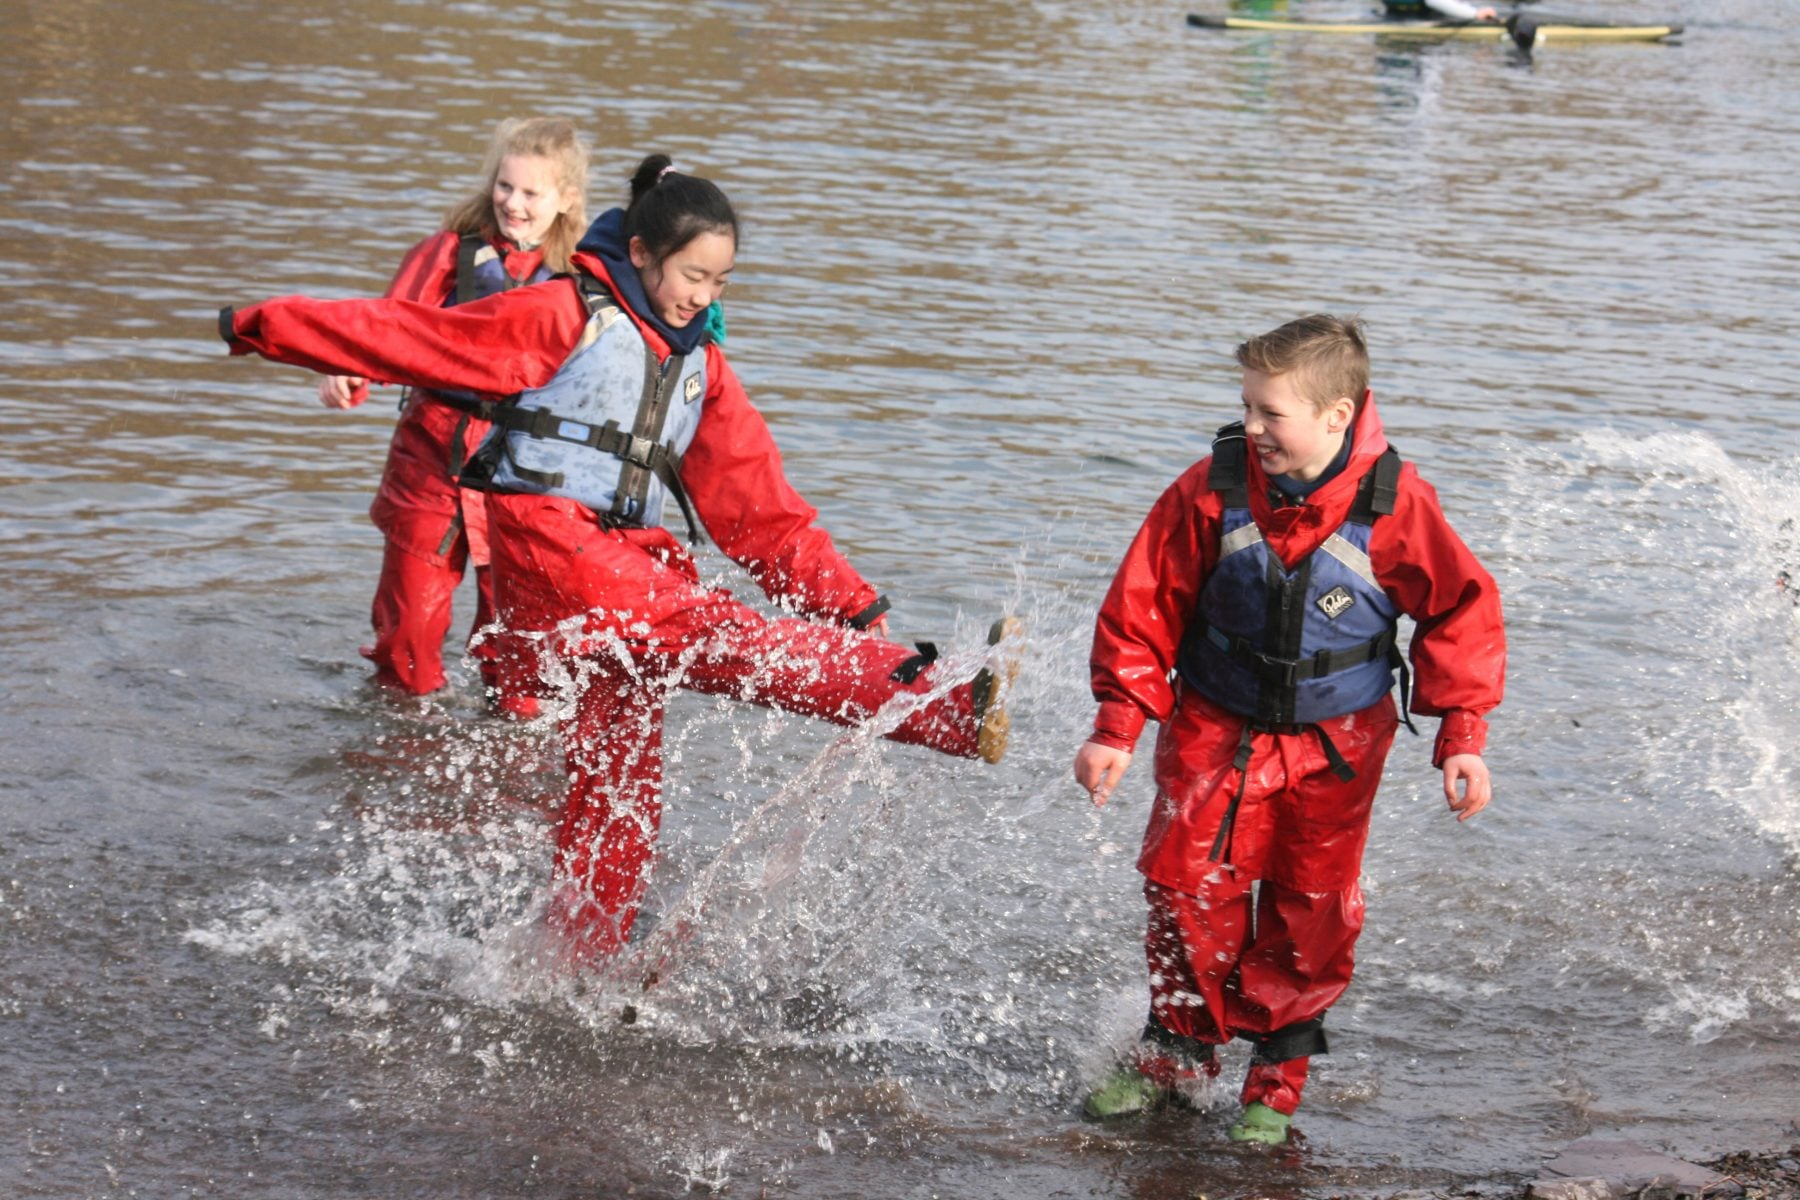 Kicking & splashing, lake Padarn, 3 primary school pupils